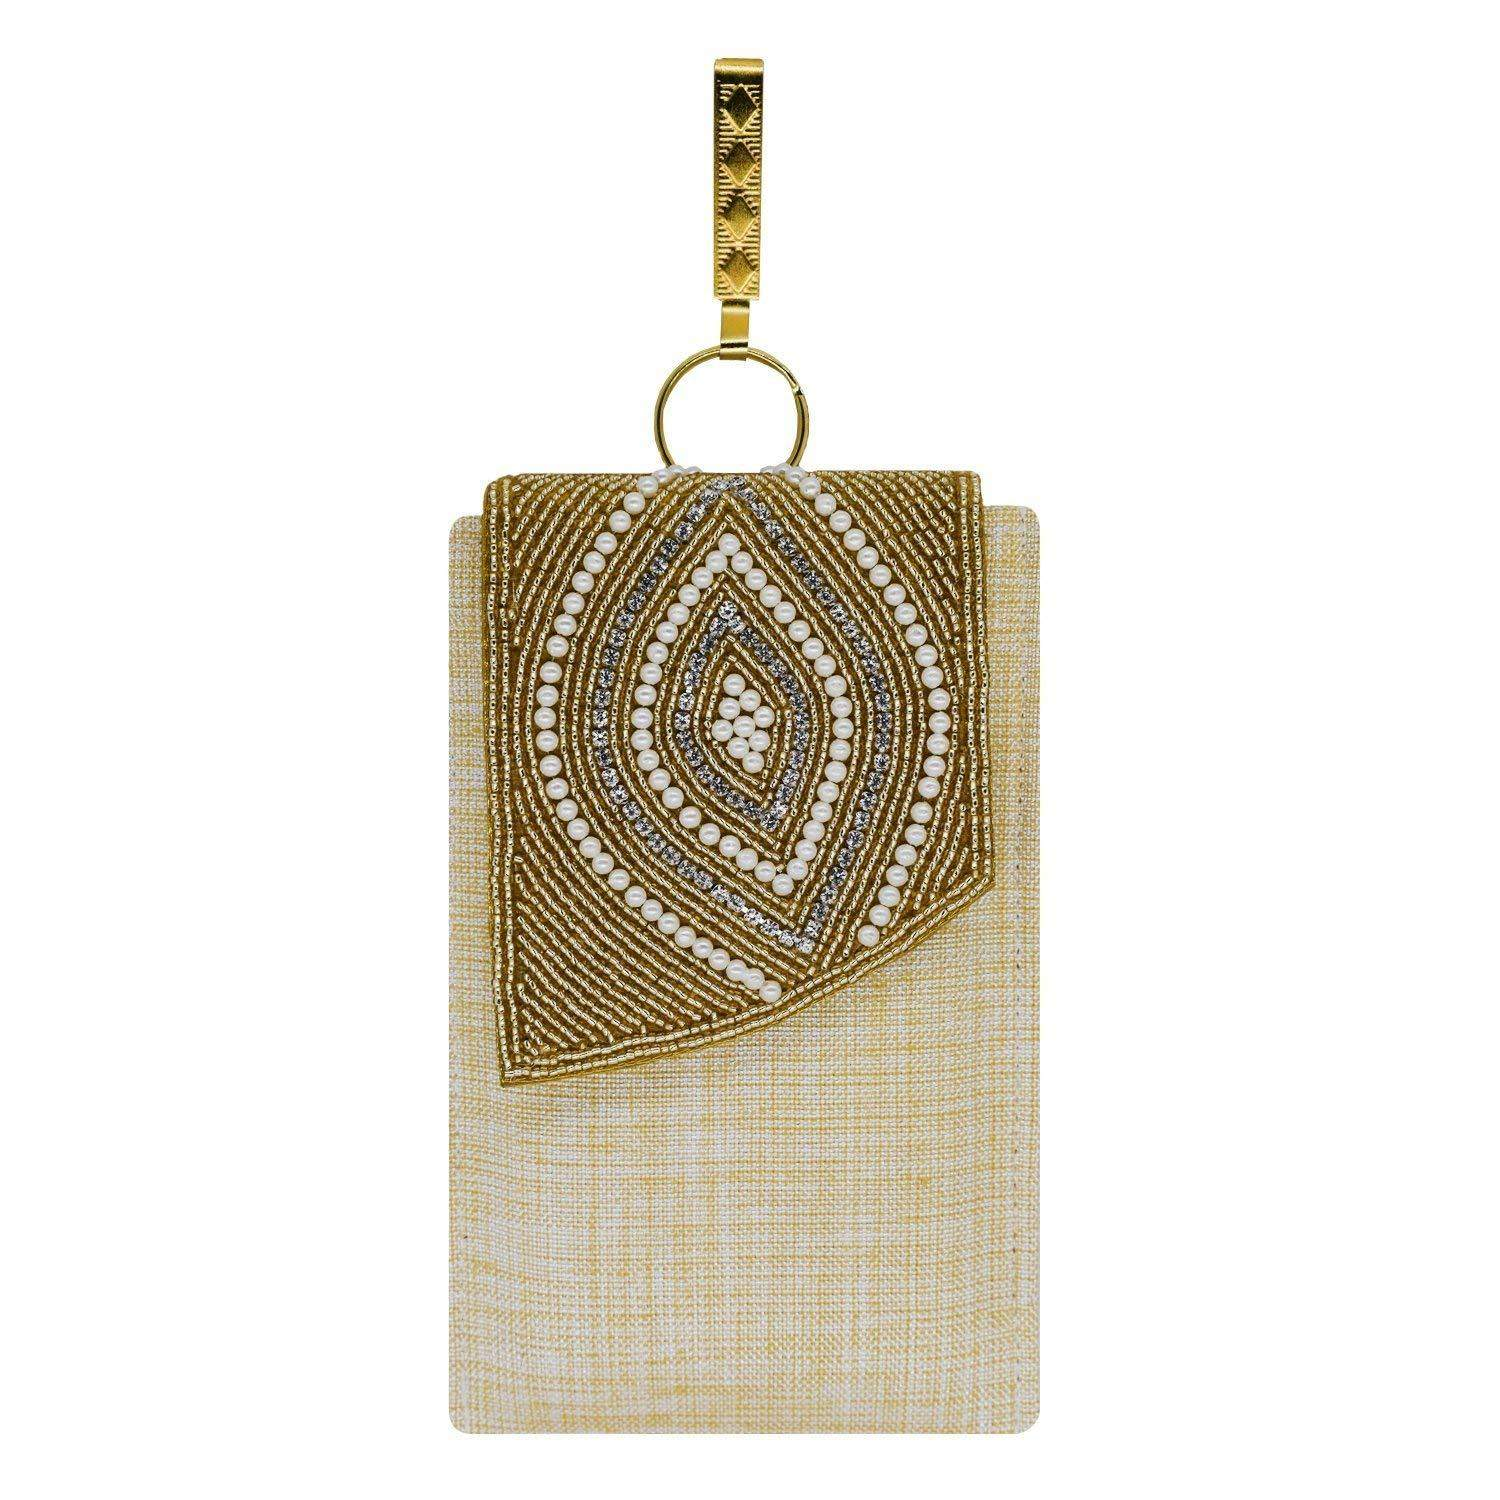 Ethnic Beads & Pearl Jute Mobile Pouch Waist Clip (Gold) - Bagaholics Gift